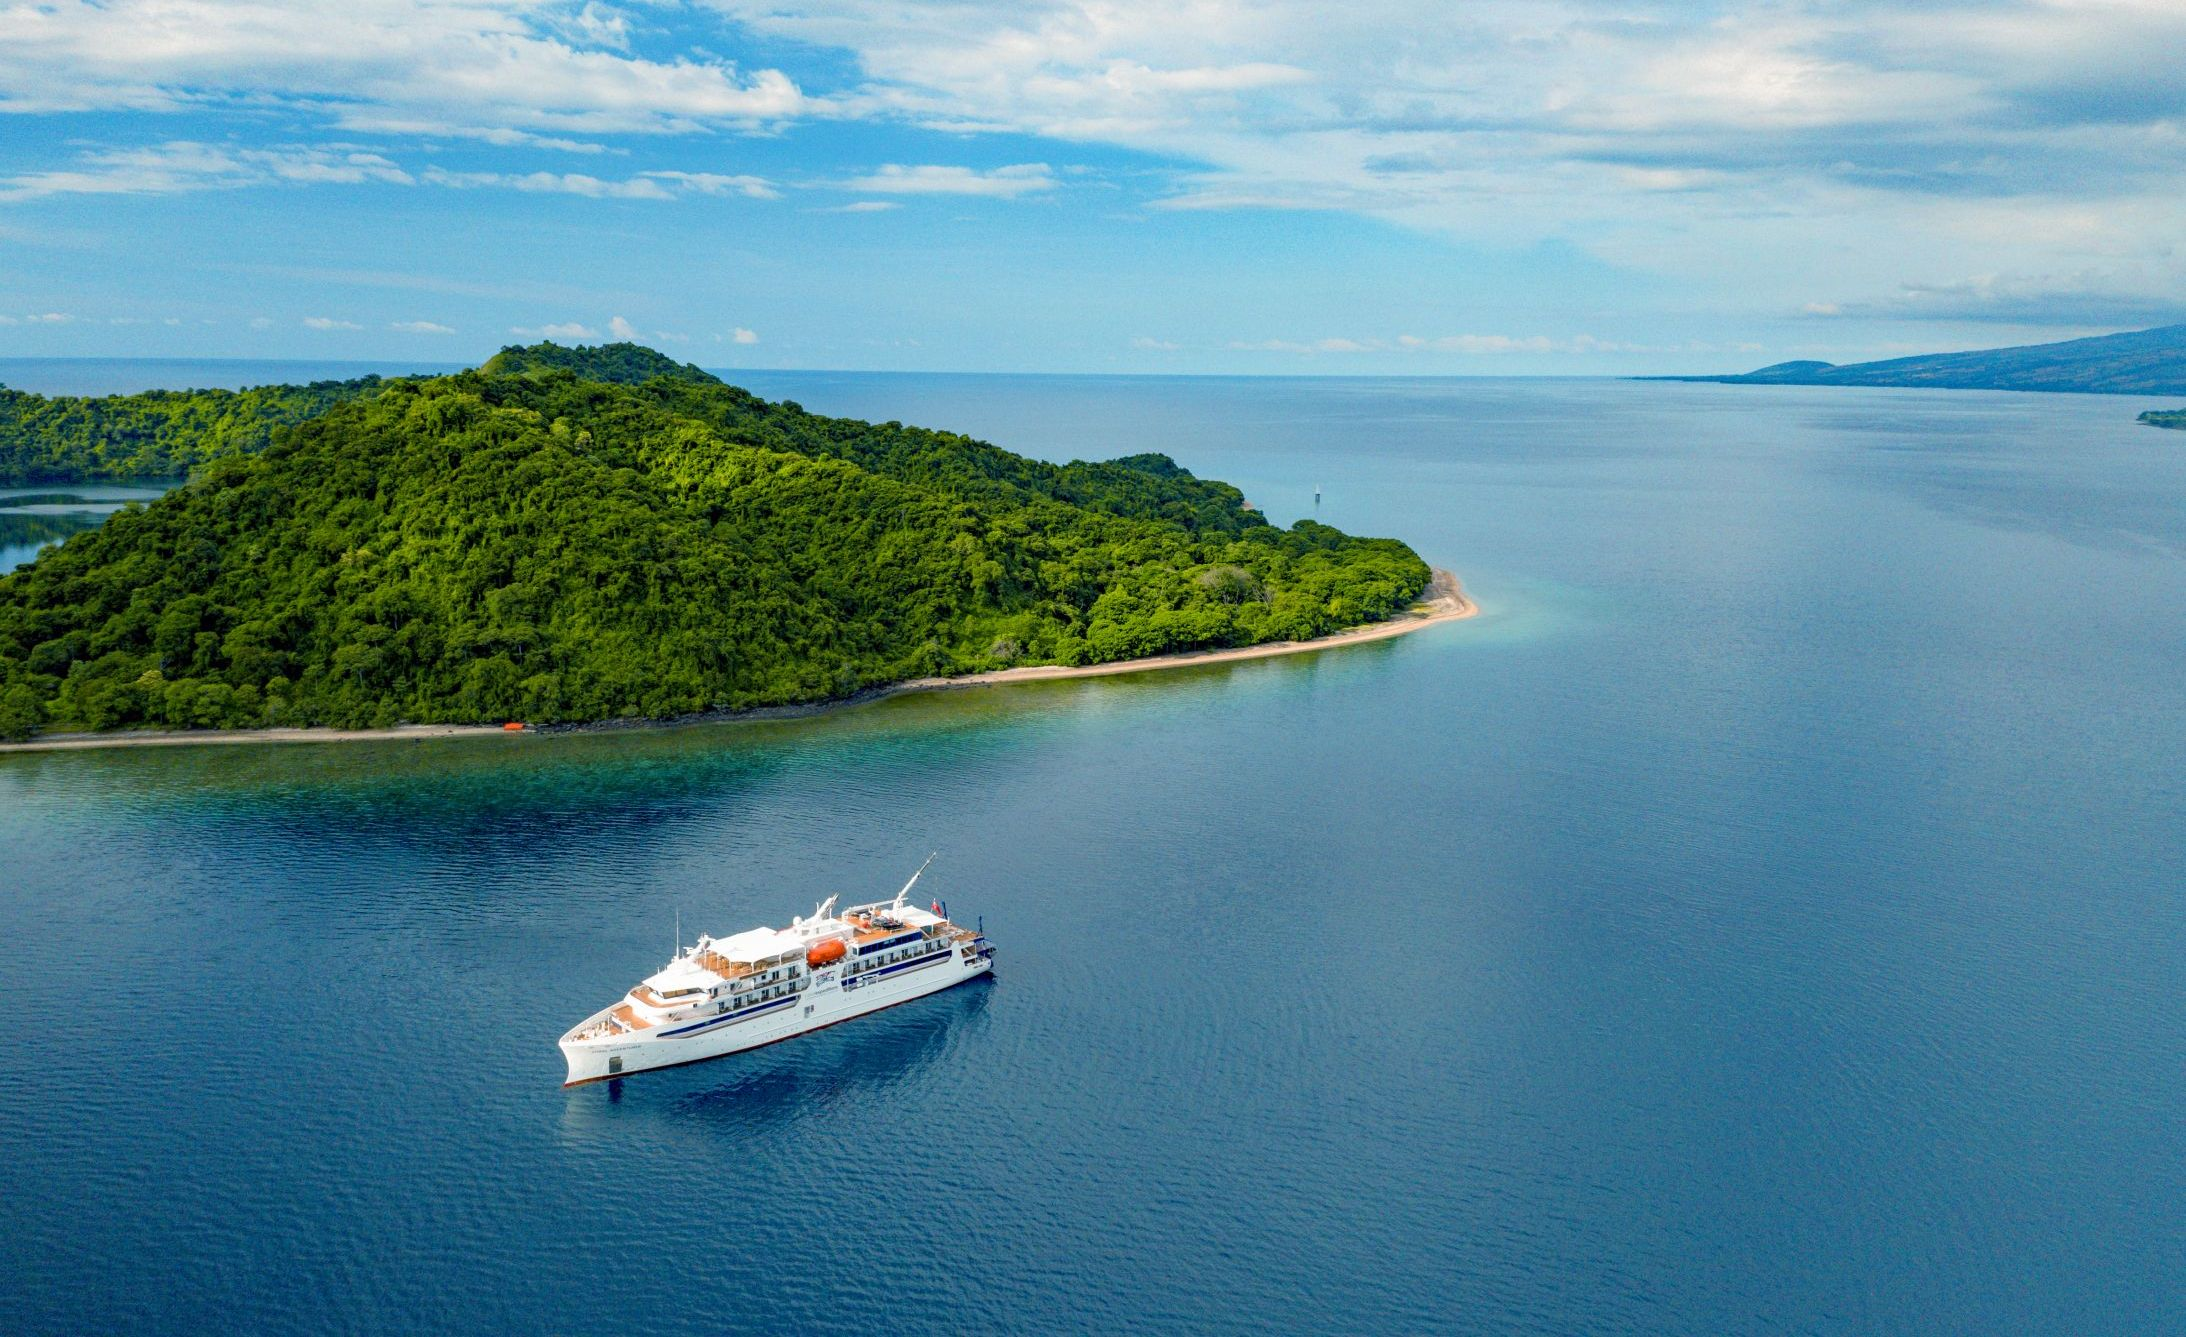 Australian small ship cruise line Coral Expeditions launches new Australian itineraries, with the return of Coral Adventurer after a ten-month hiatus.